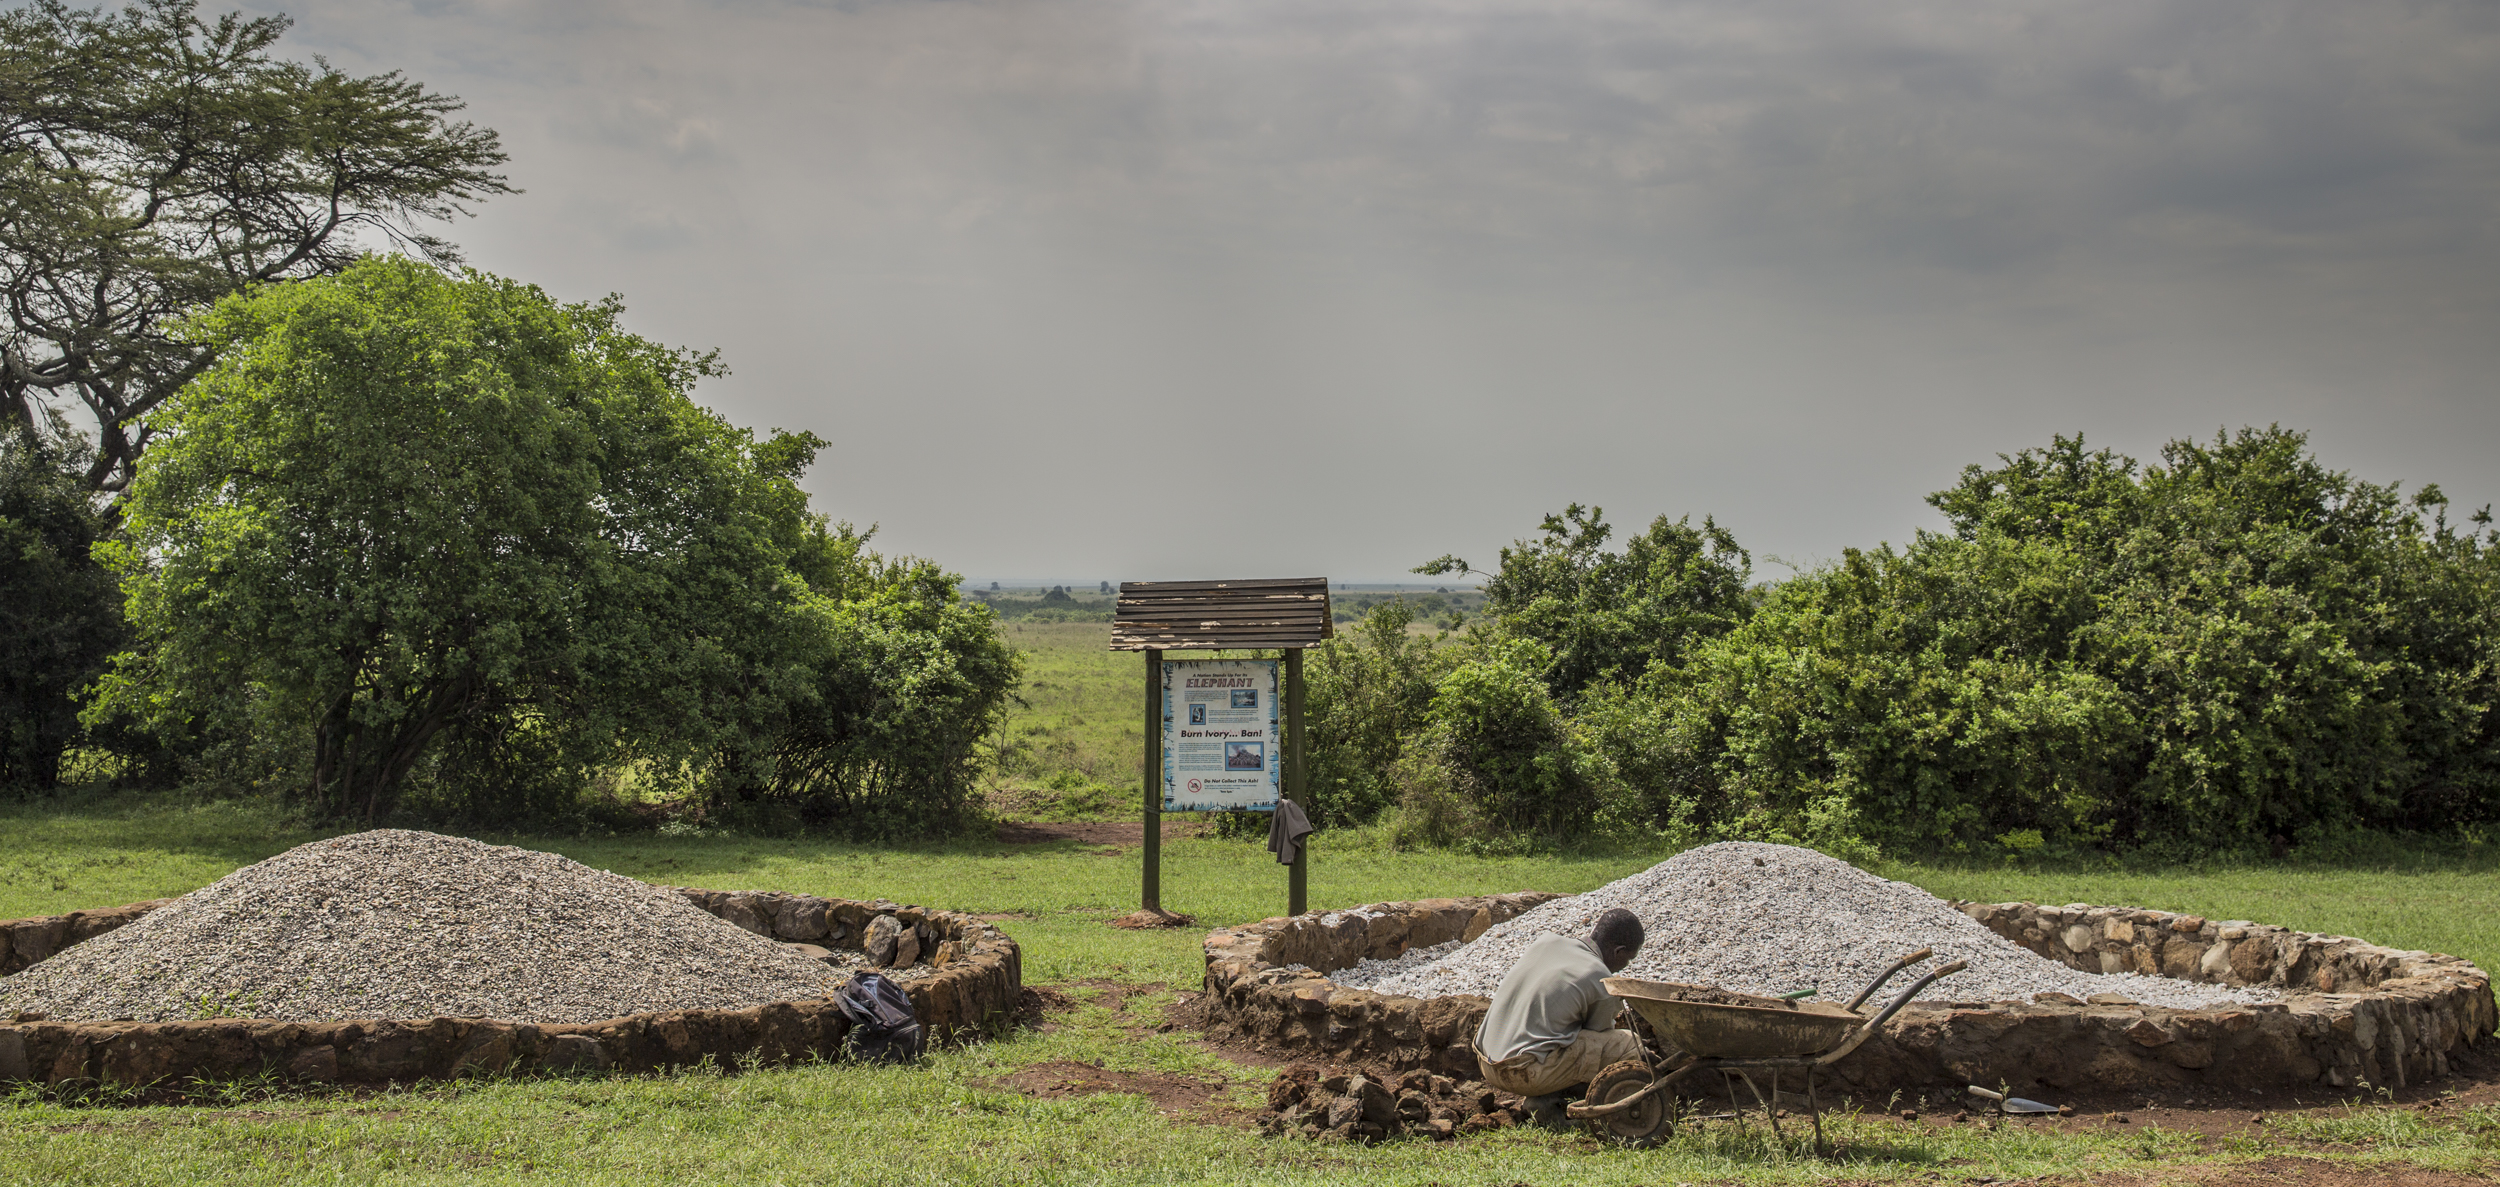 Chasing Ivory Out of Business